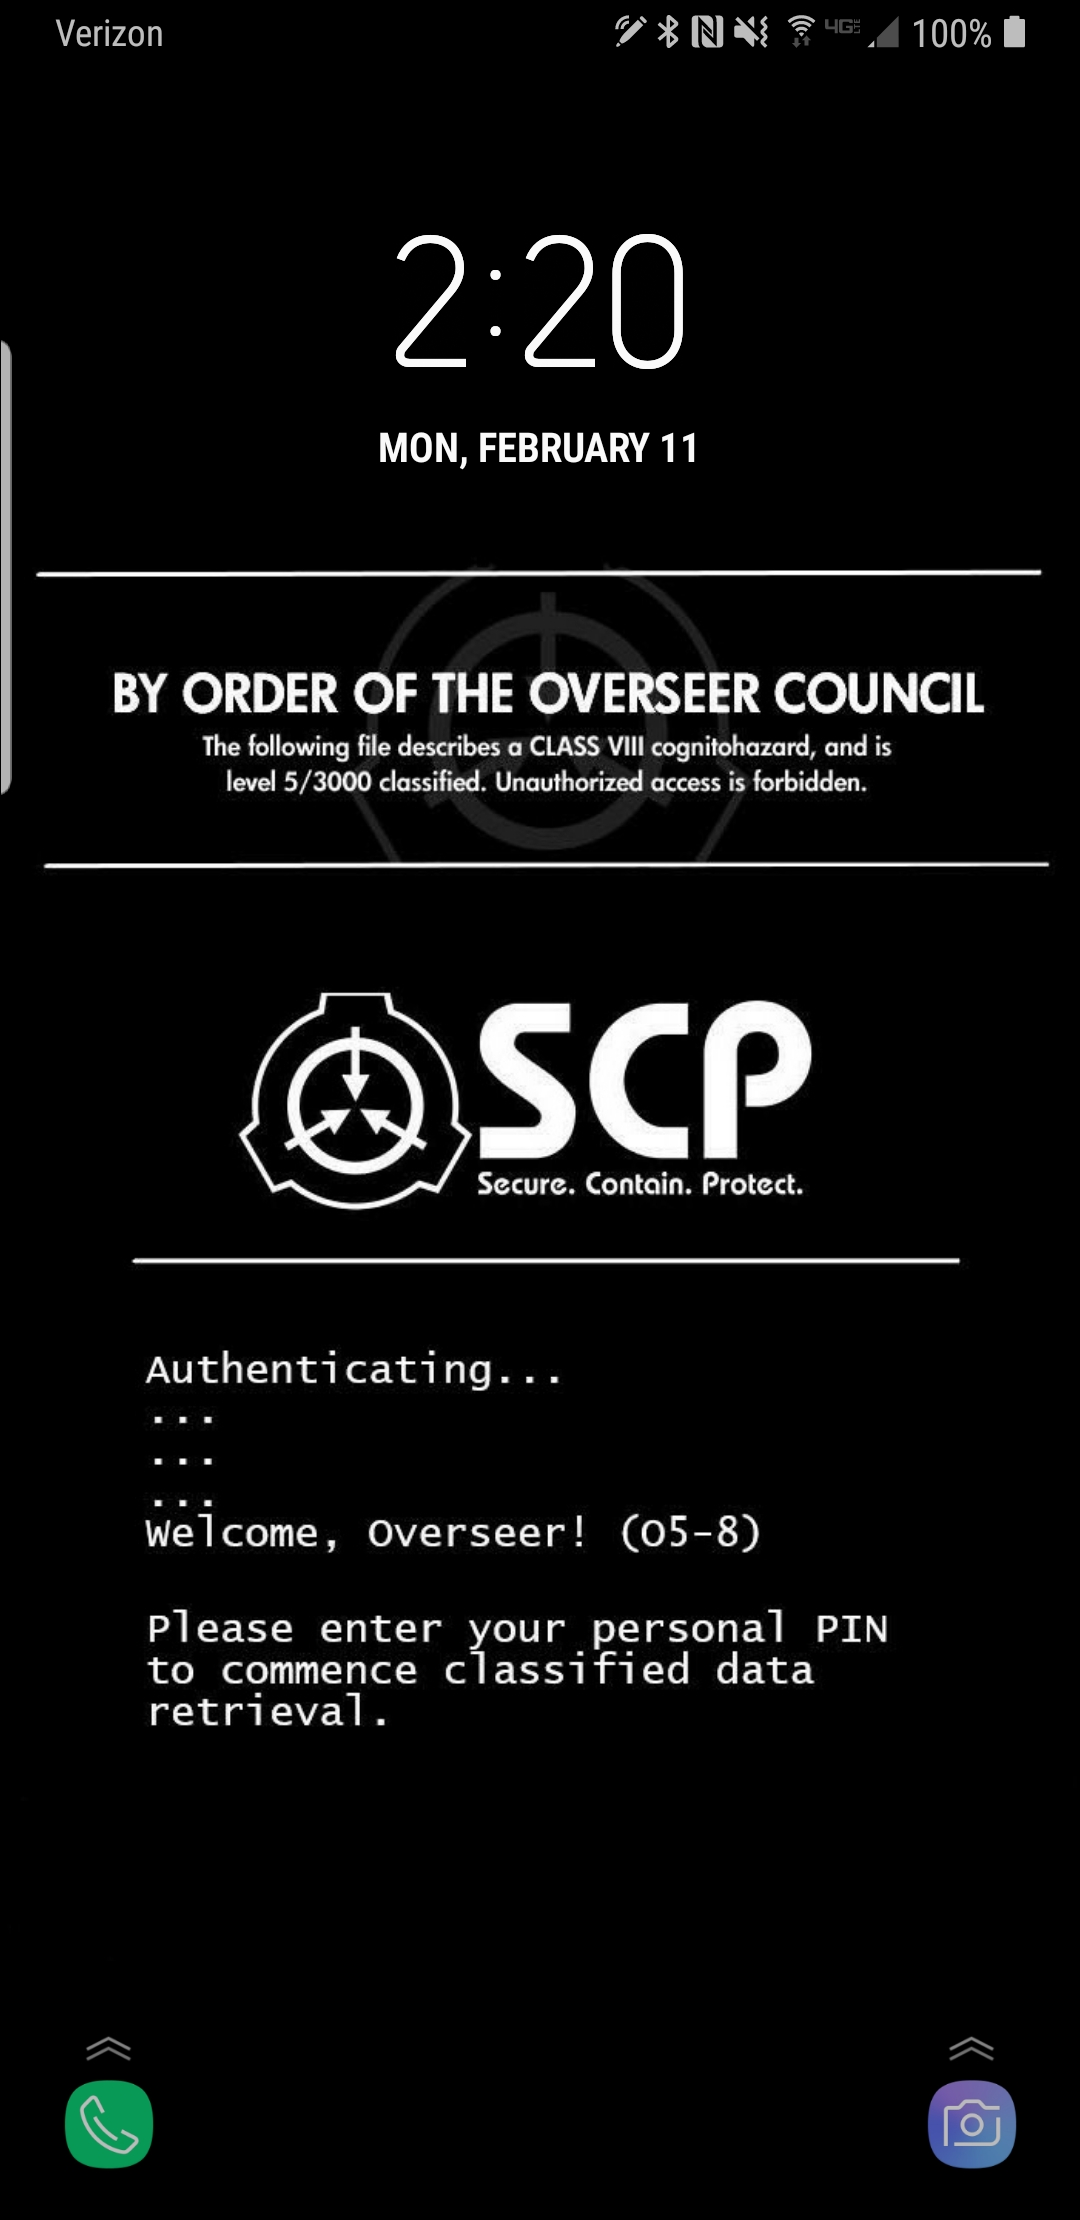 Scp Phone Wallpaper Posted By Sarah Peltier